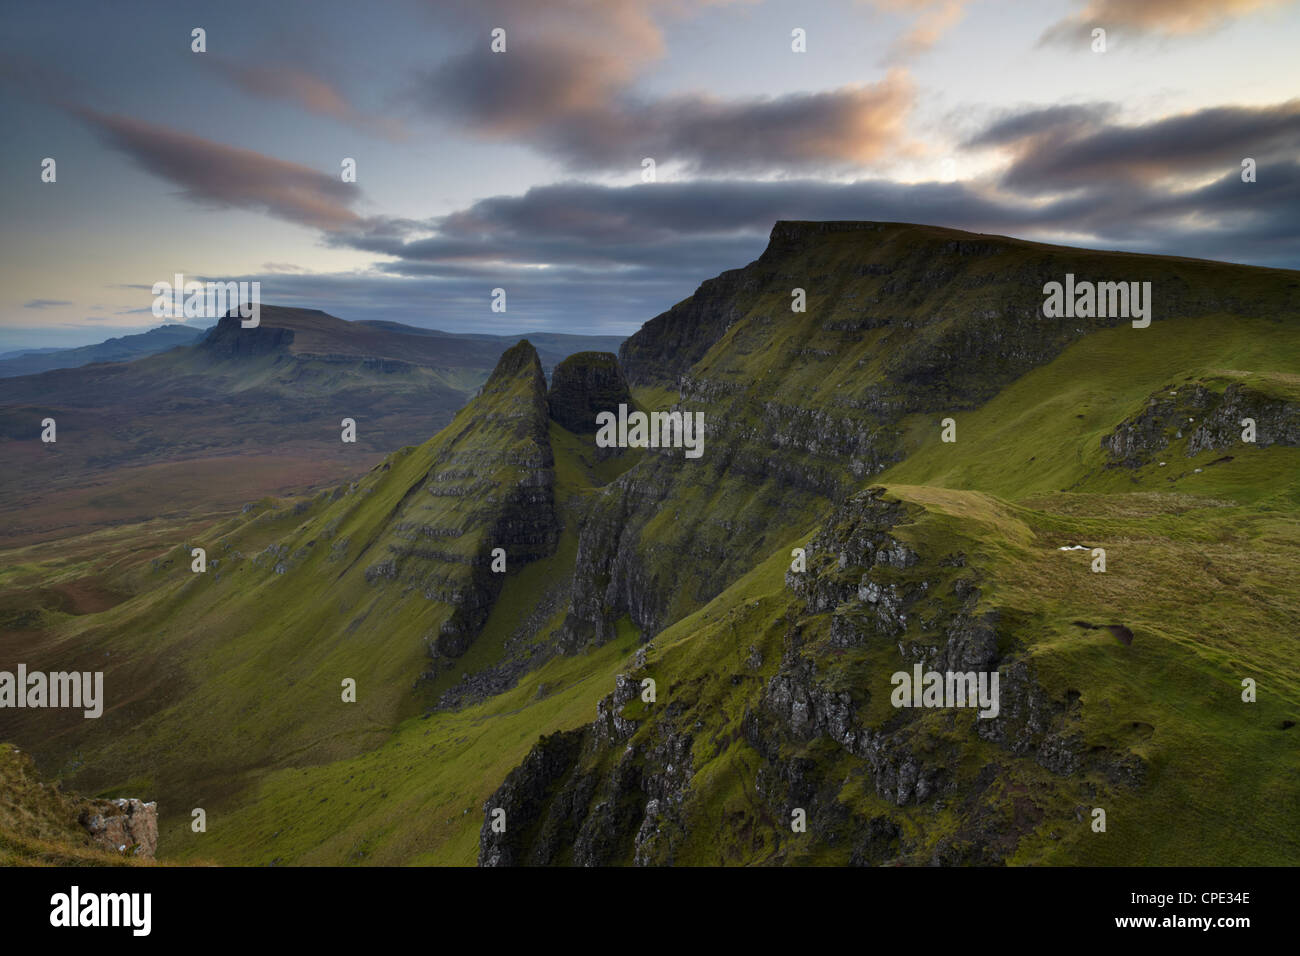 A view southwards along the Trotternish Peninsula from the mountain Bioda Buidhe, Isle of Skye, Inner Hebrides, - Stock Image